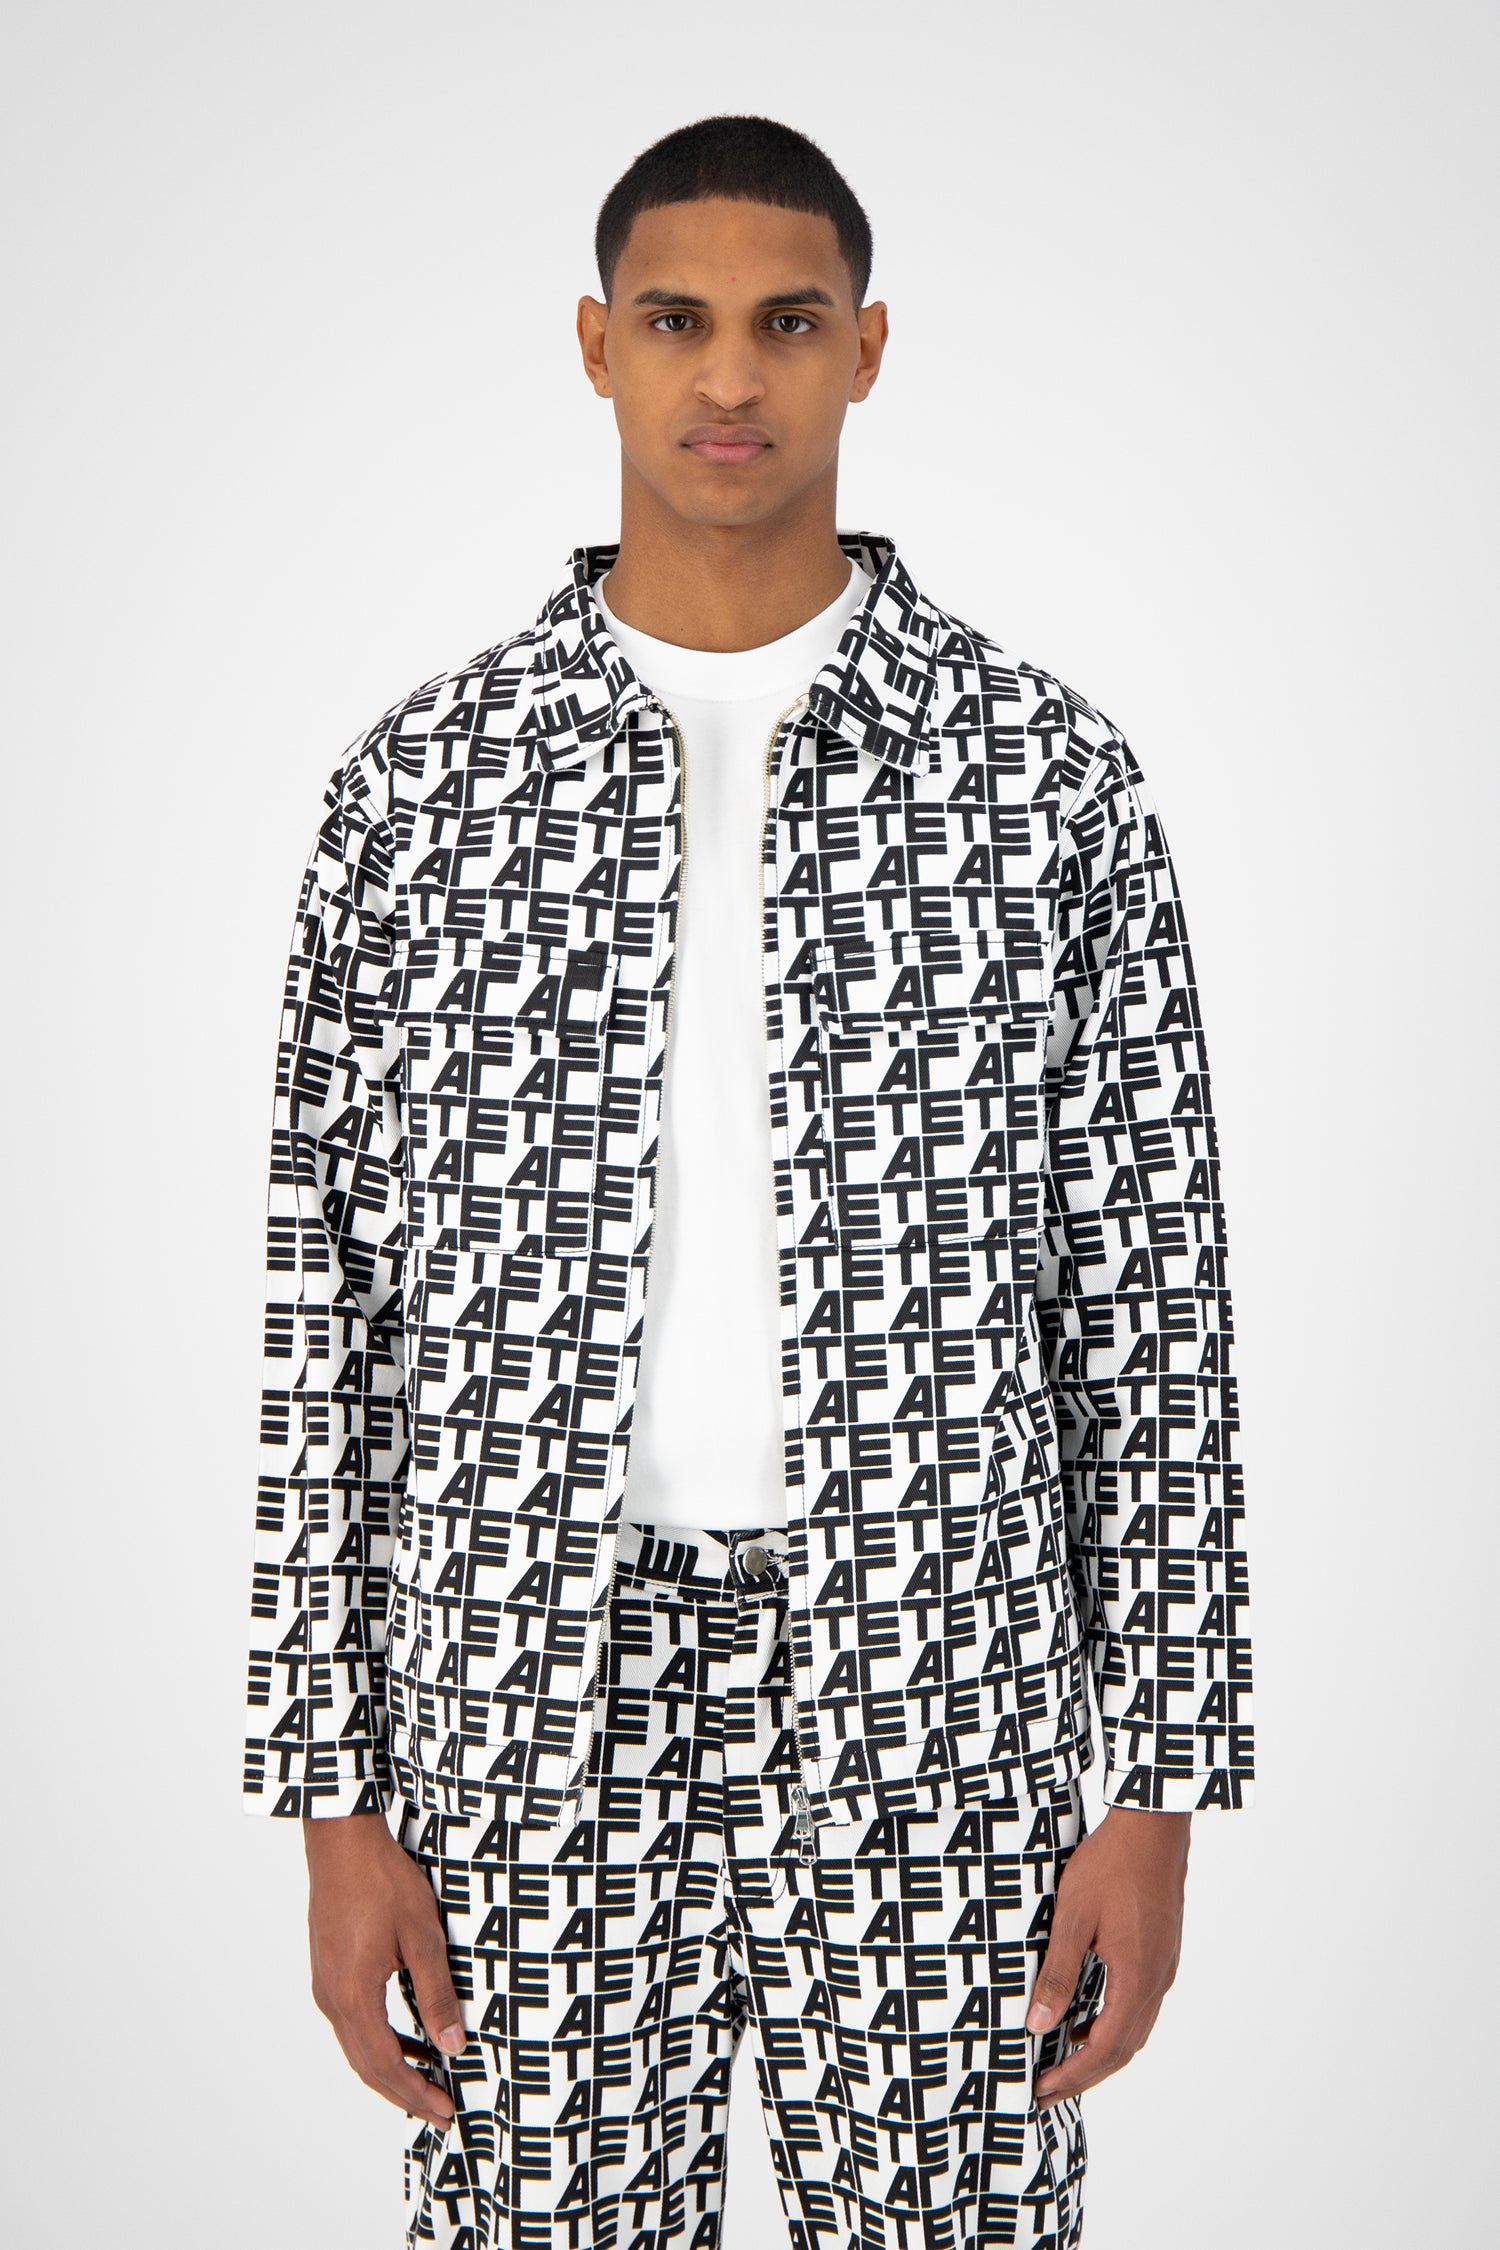 Jack Jacket - Allover White/Black